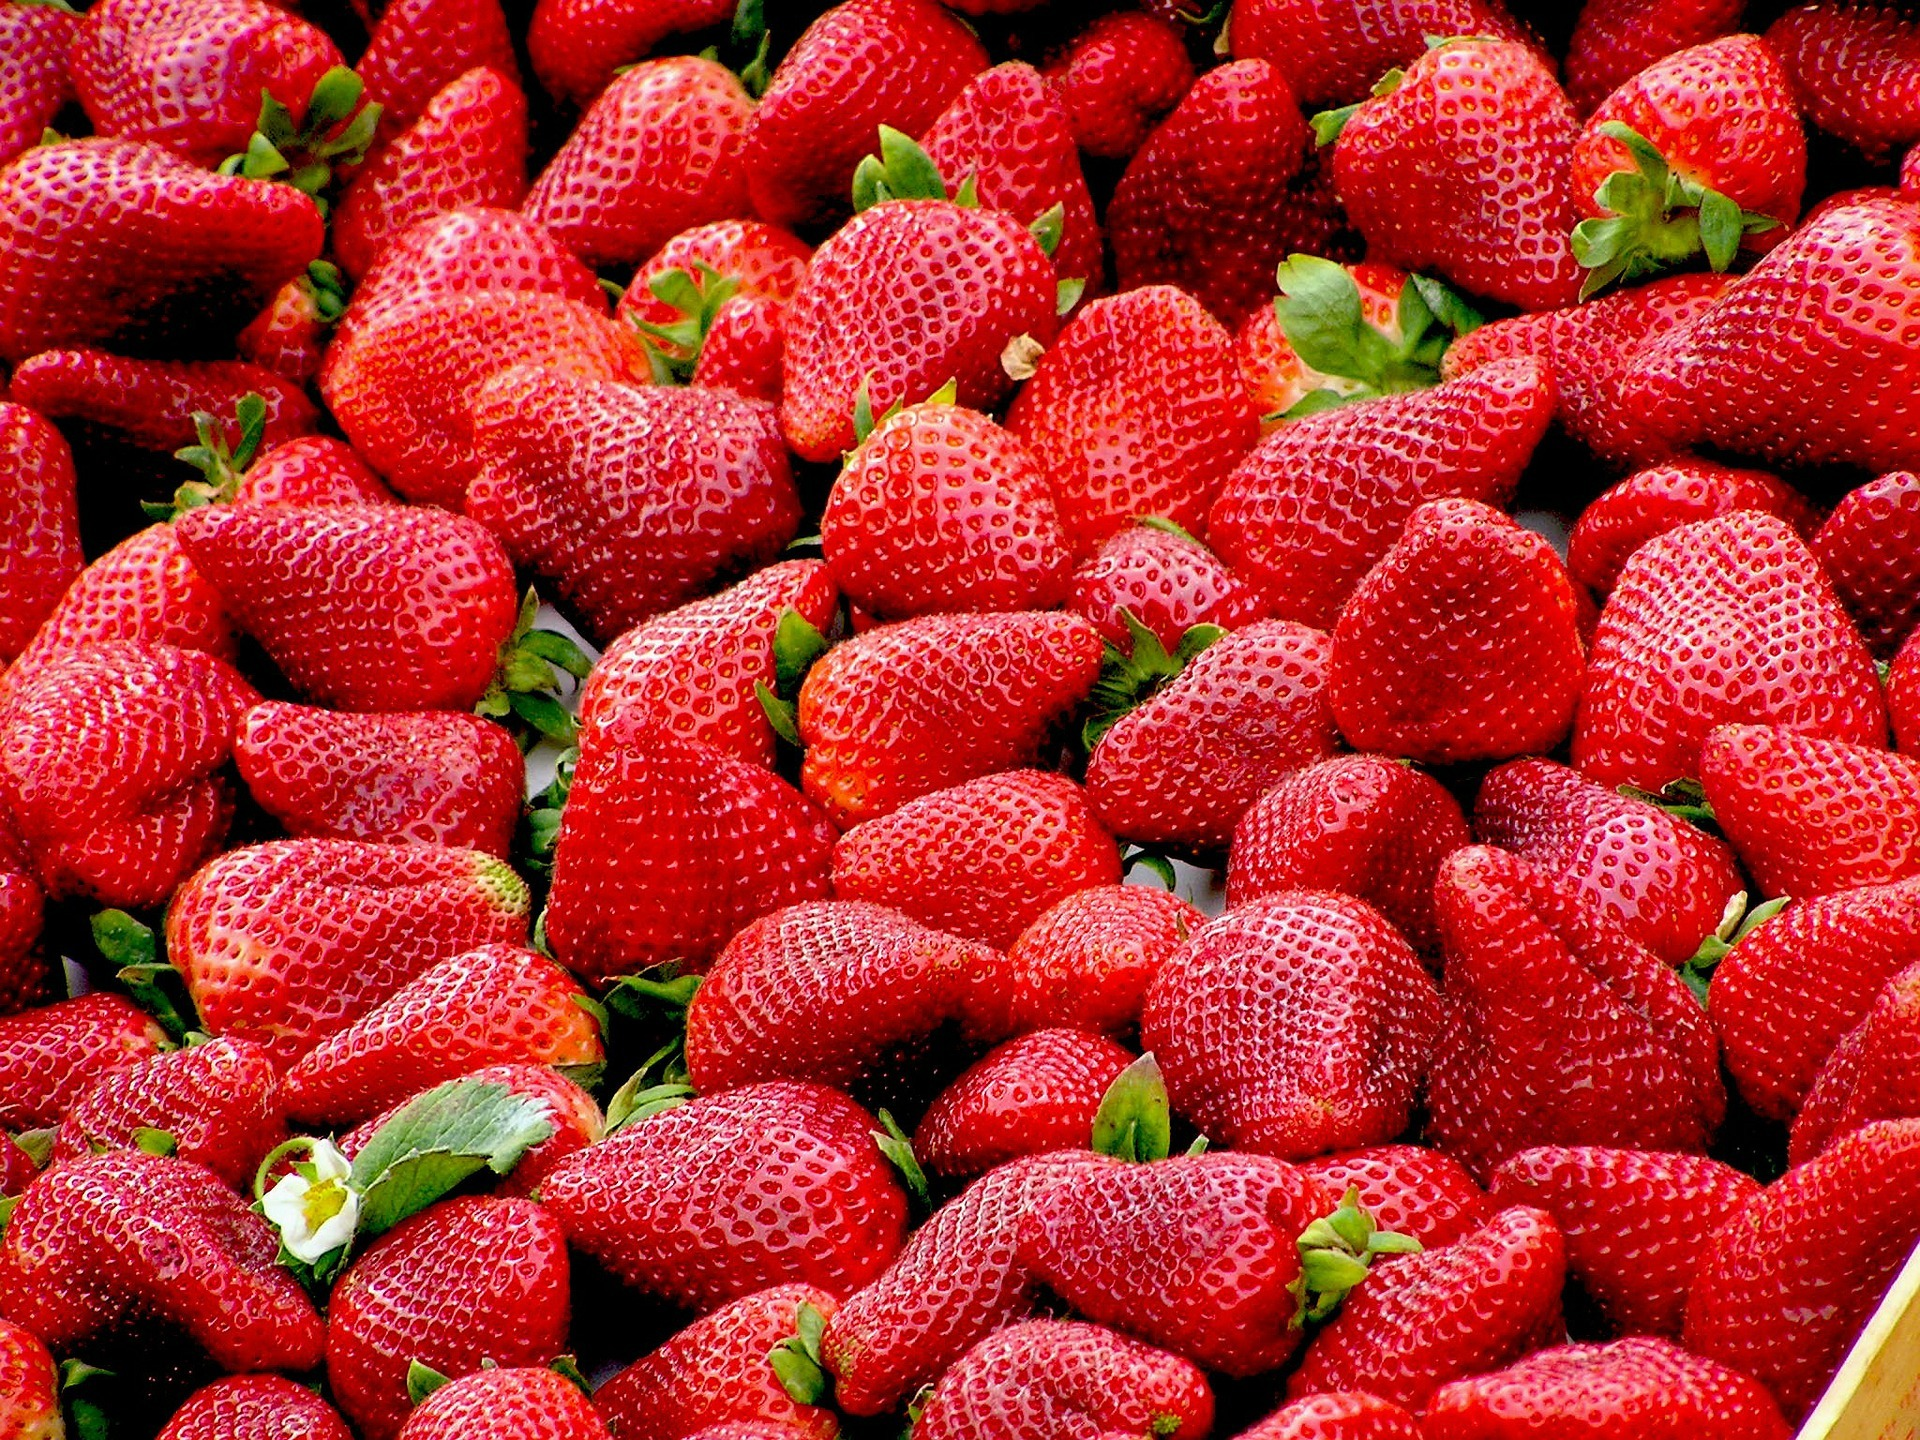 Strawberries. File photo